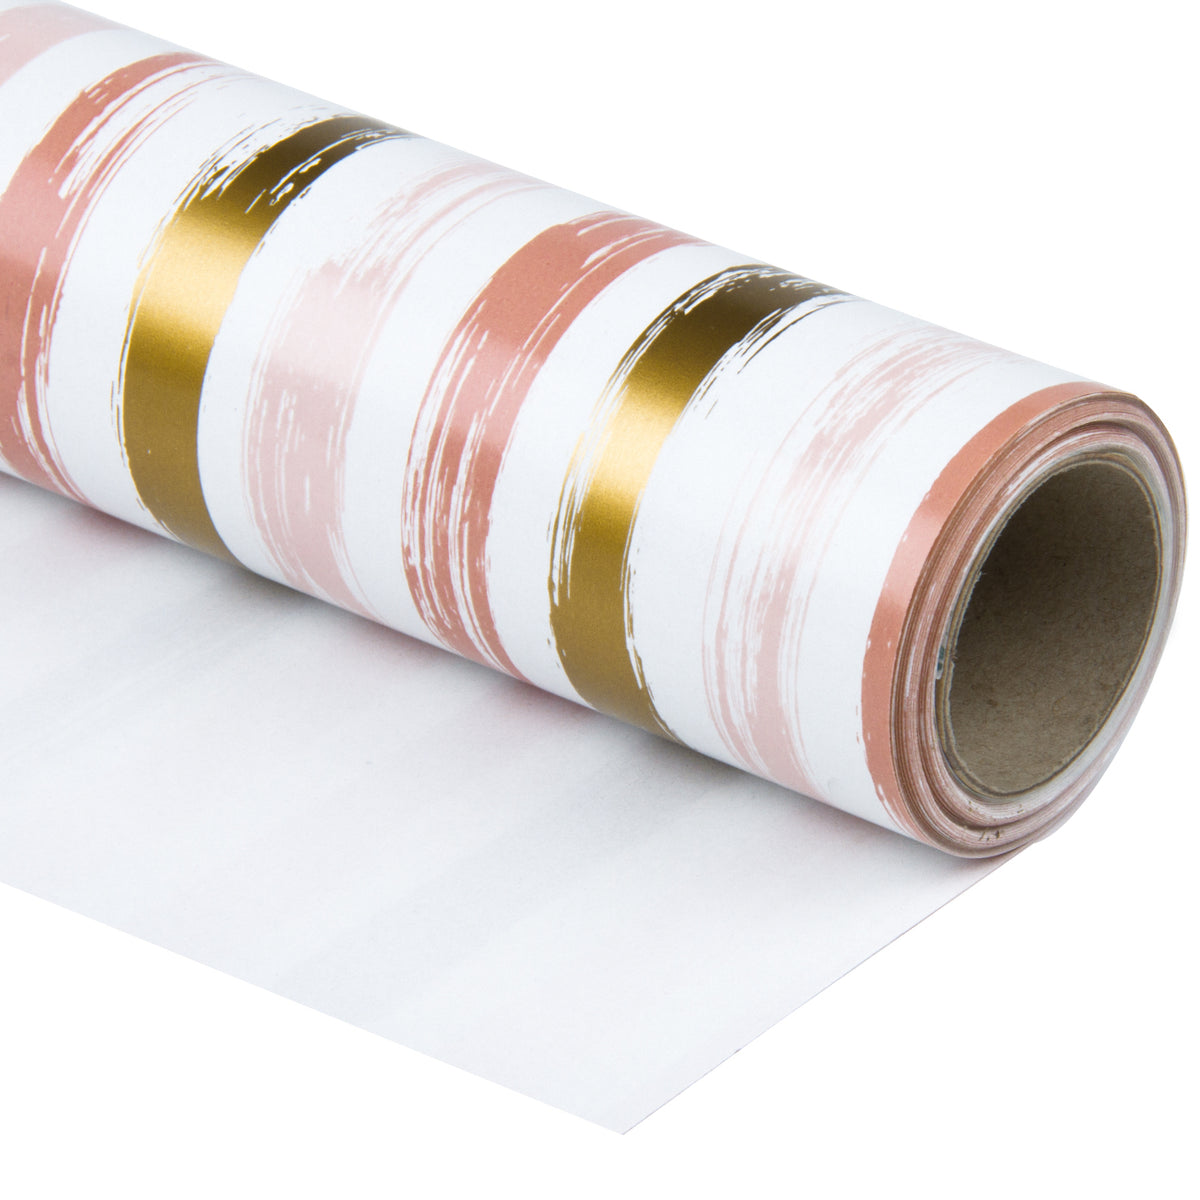 Wrapaholic-Pink-and-Gold Lines-Print-Gift-Wrapping-Paper-Roll-1